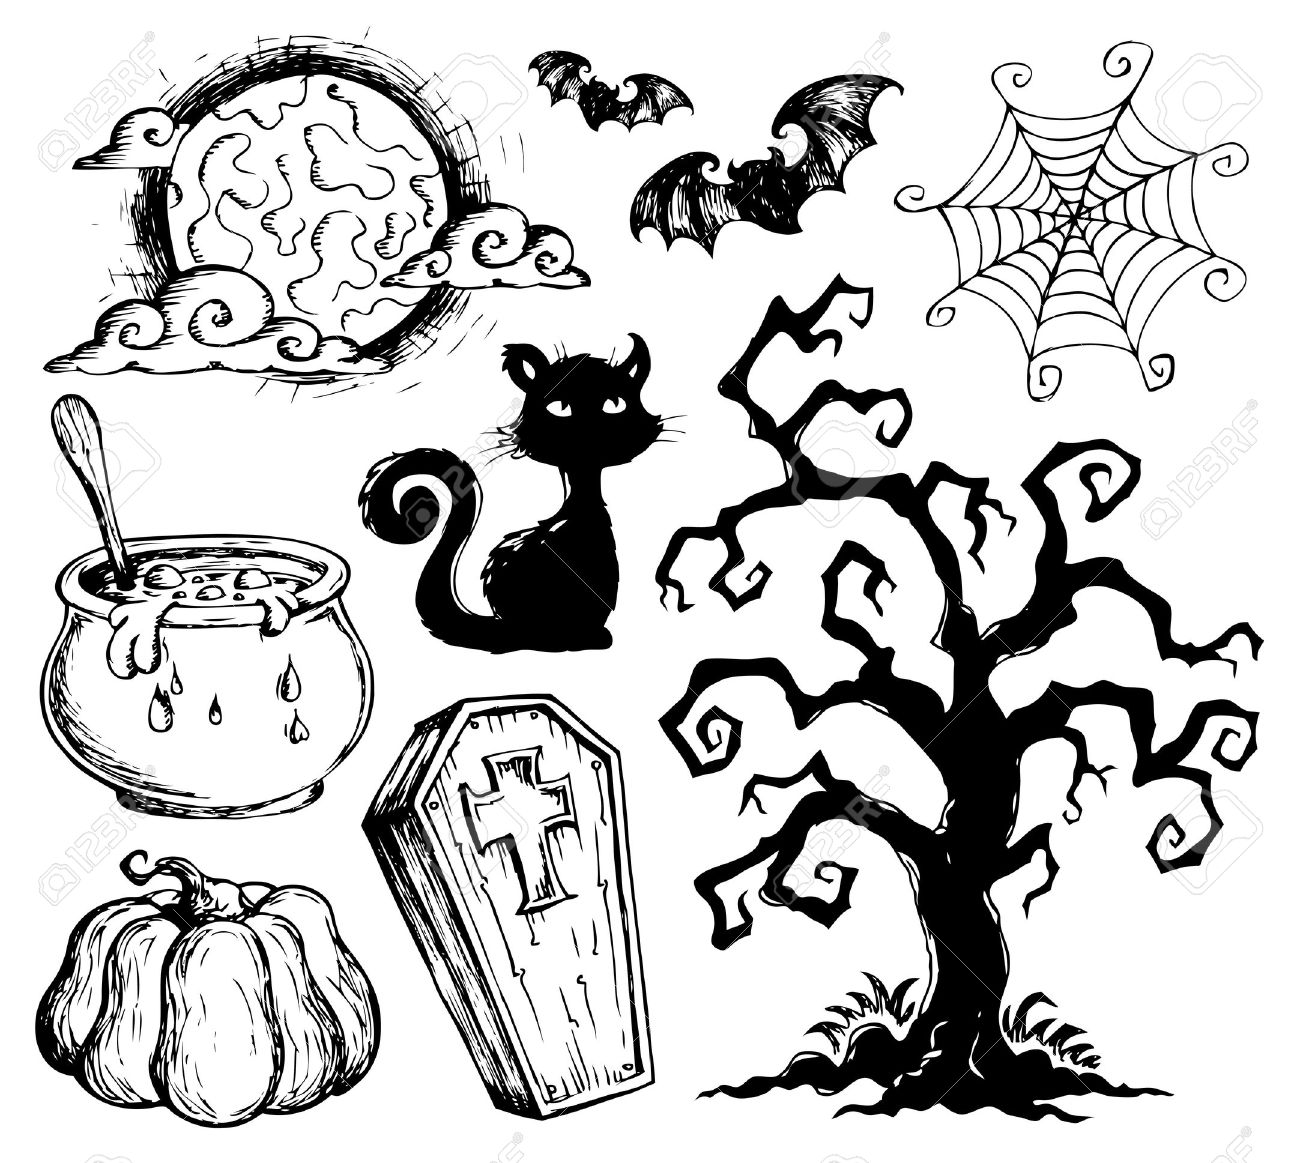 1300x1163 Halloween Drawings Royalty Free Cliparts, Vectors, And Stock